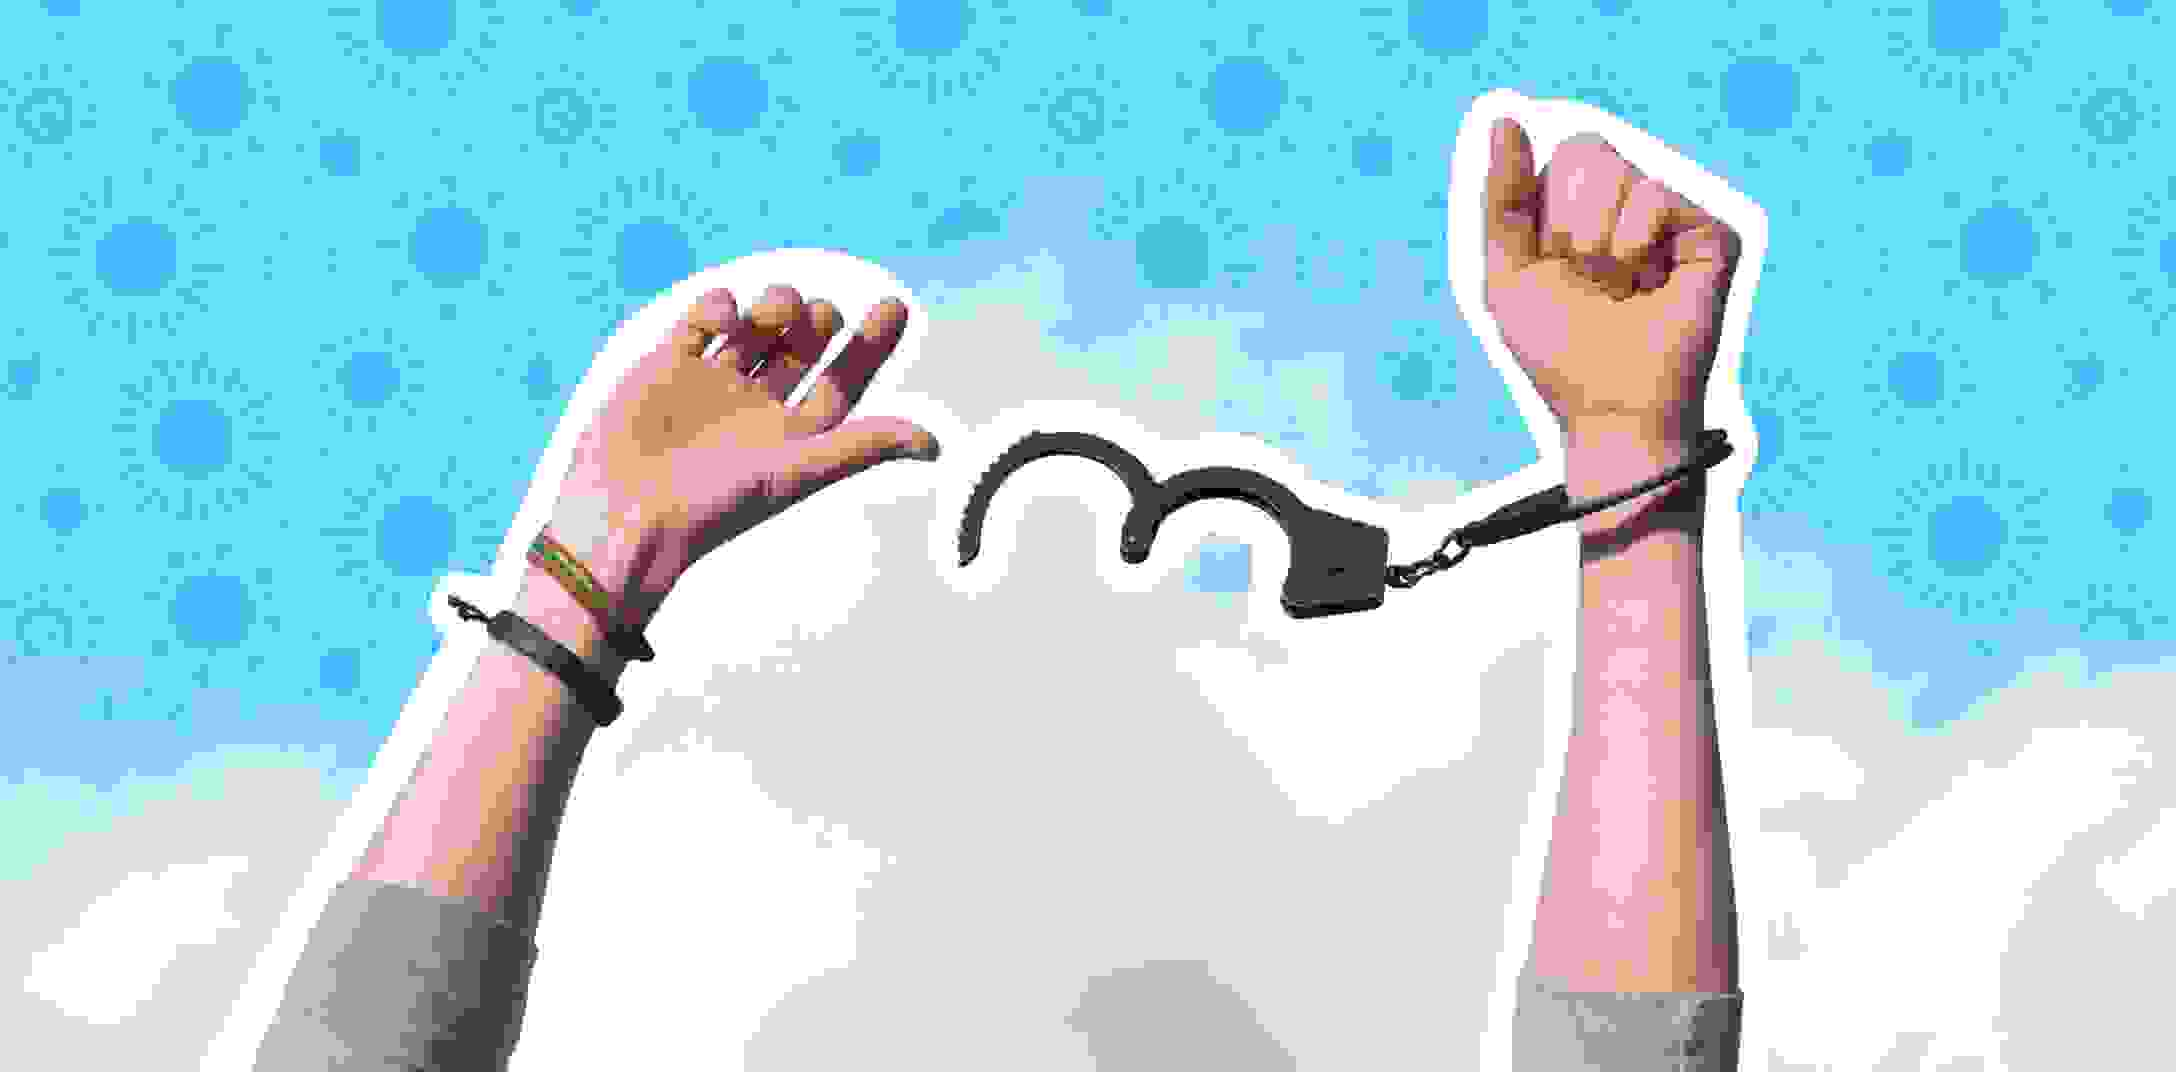 Hands breaking free from handcuffs